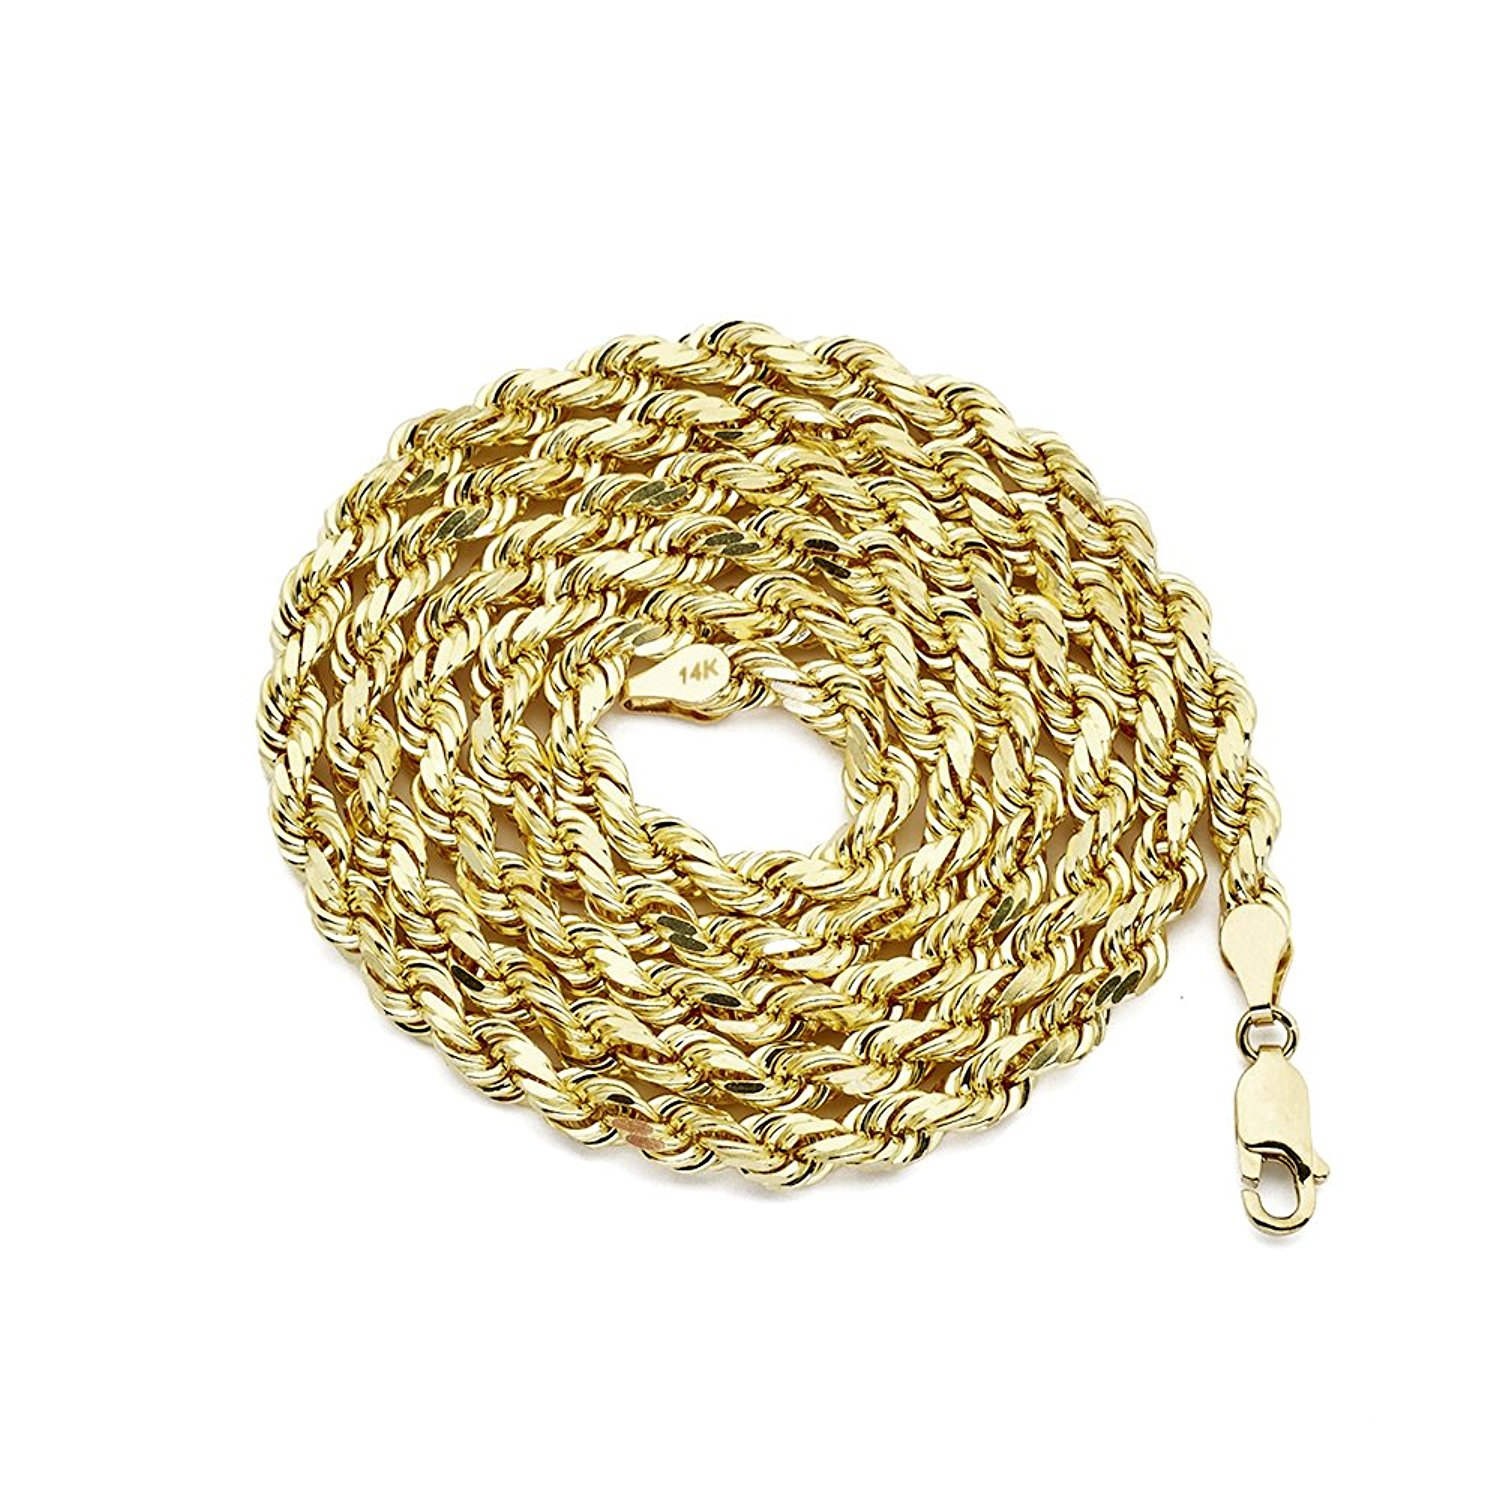 LOVEBLING 14K Yellow Gold 5mm Solid Diamond Cut Rope Chain Necklace with Lobster Lock